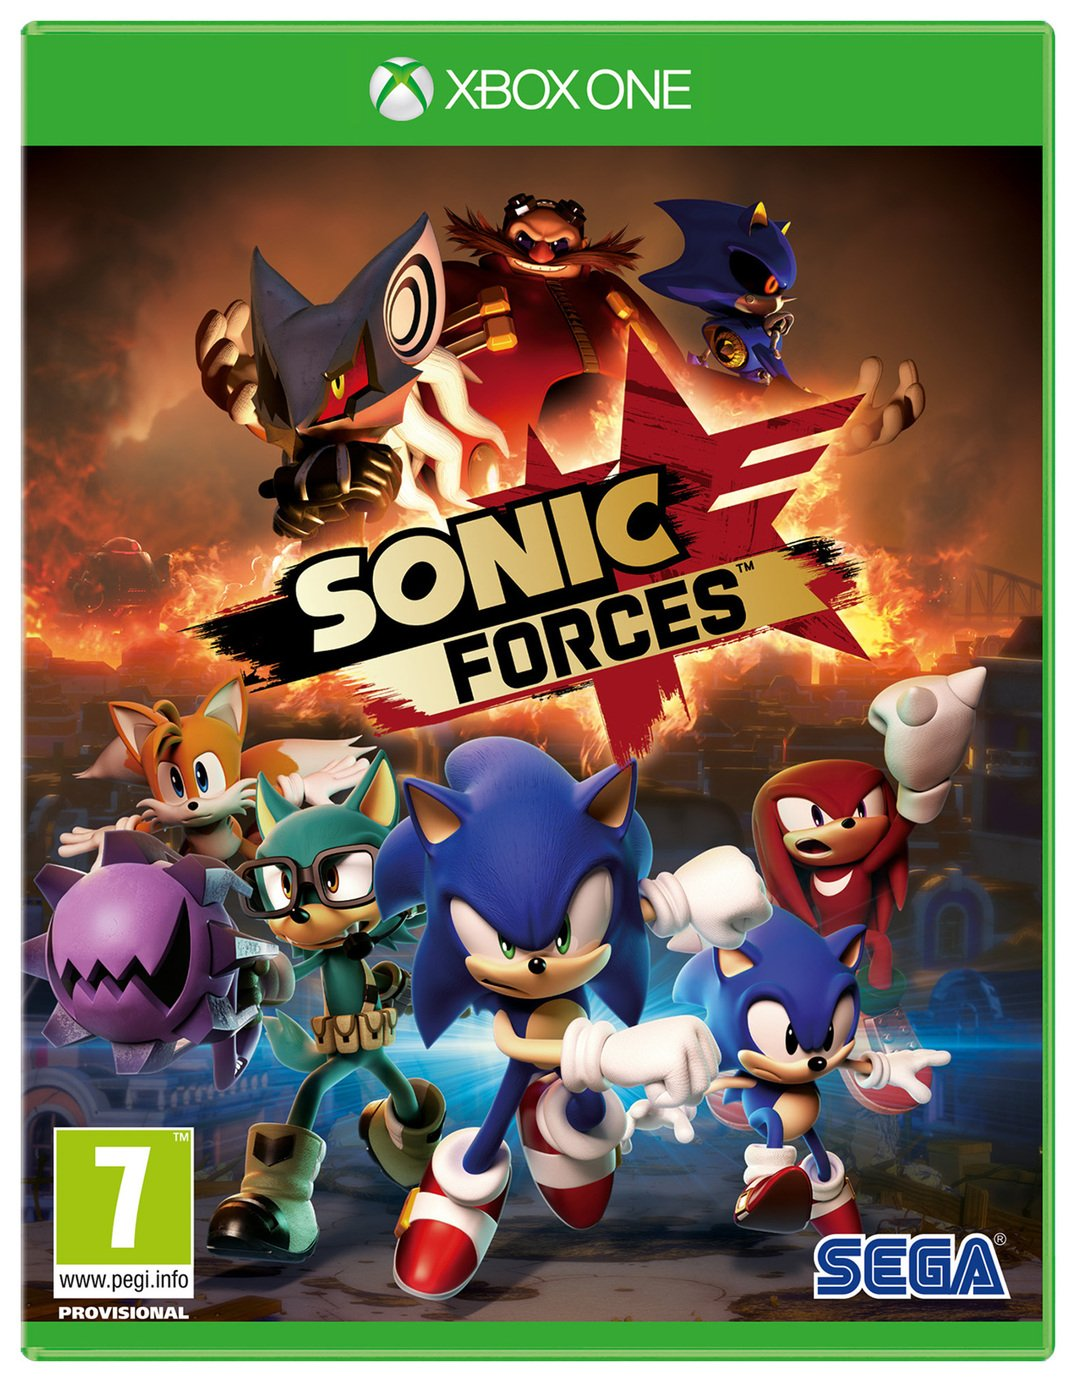 Sonic Forces Xbox One Game from Xbox One X Enhanced